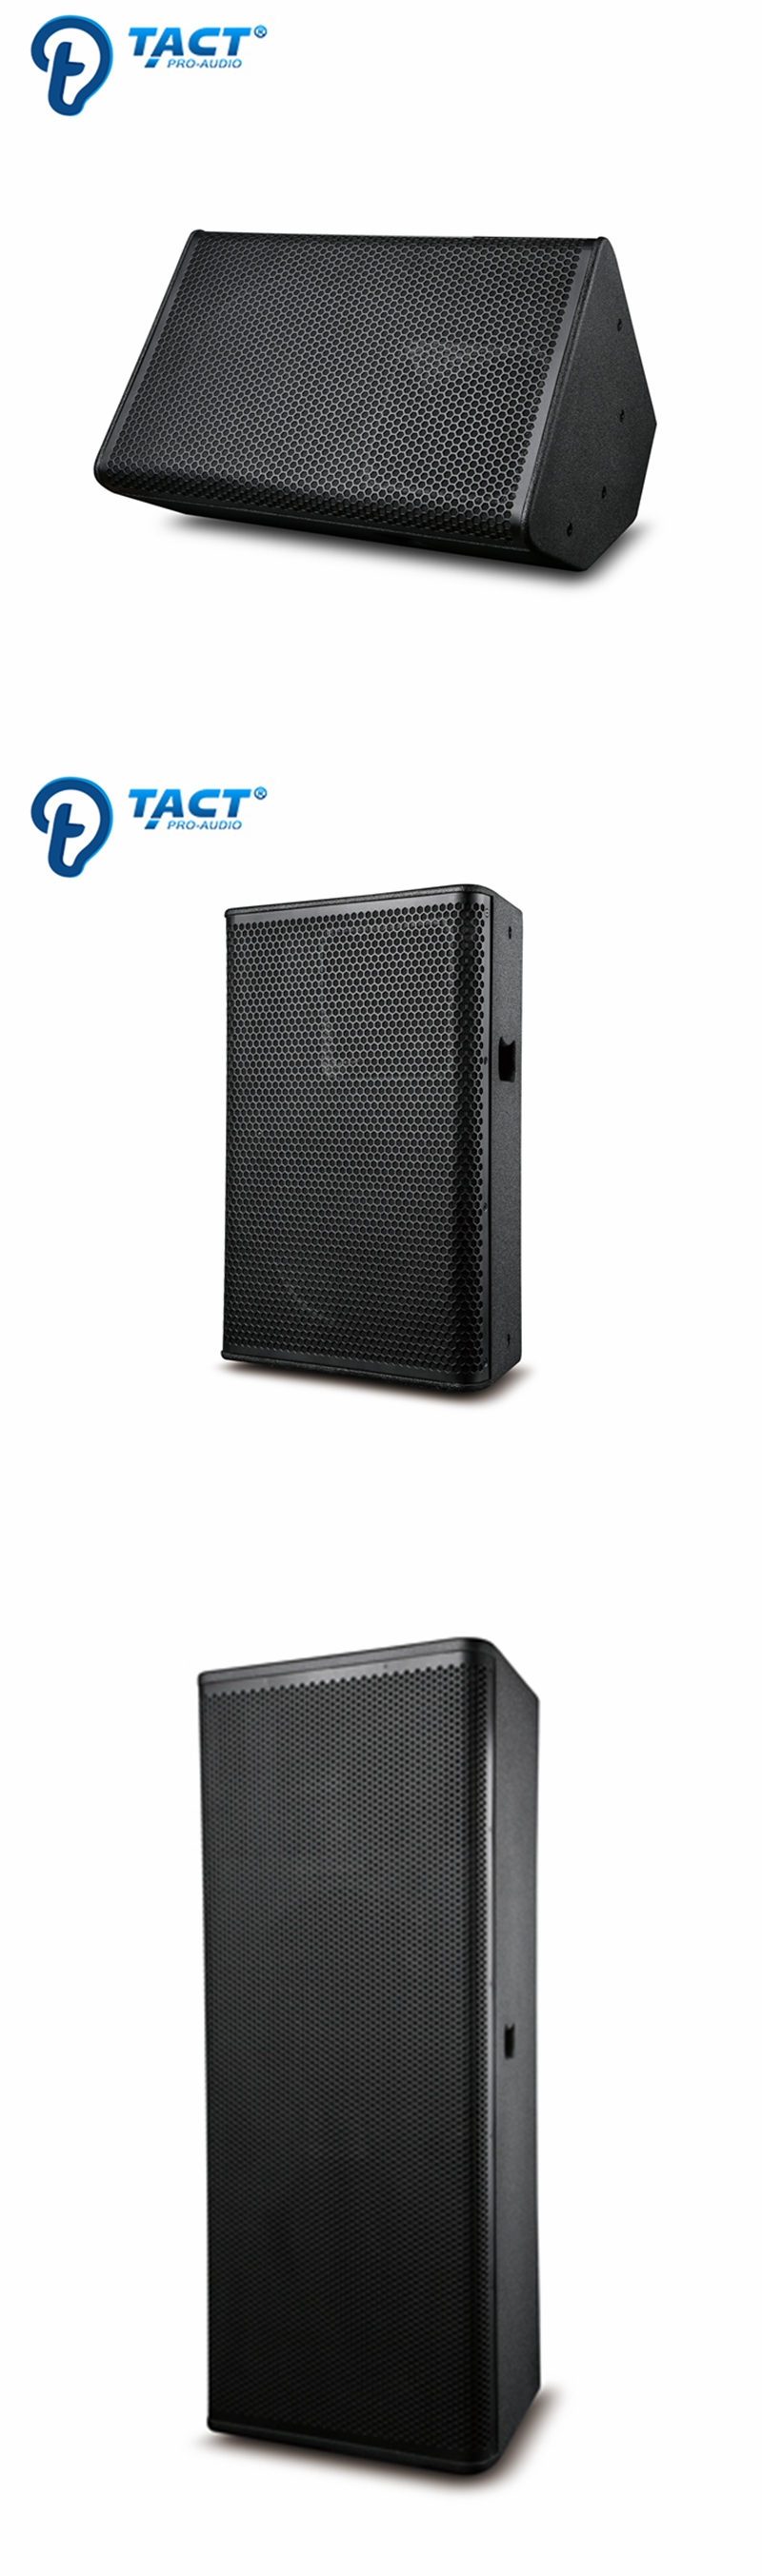 PH12 12 inch passive 2-way full range loudspeaker, professional speaker